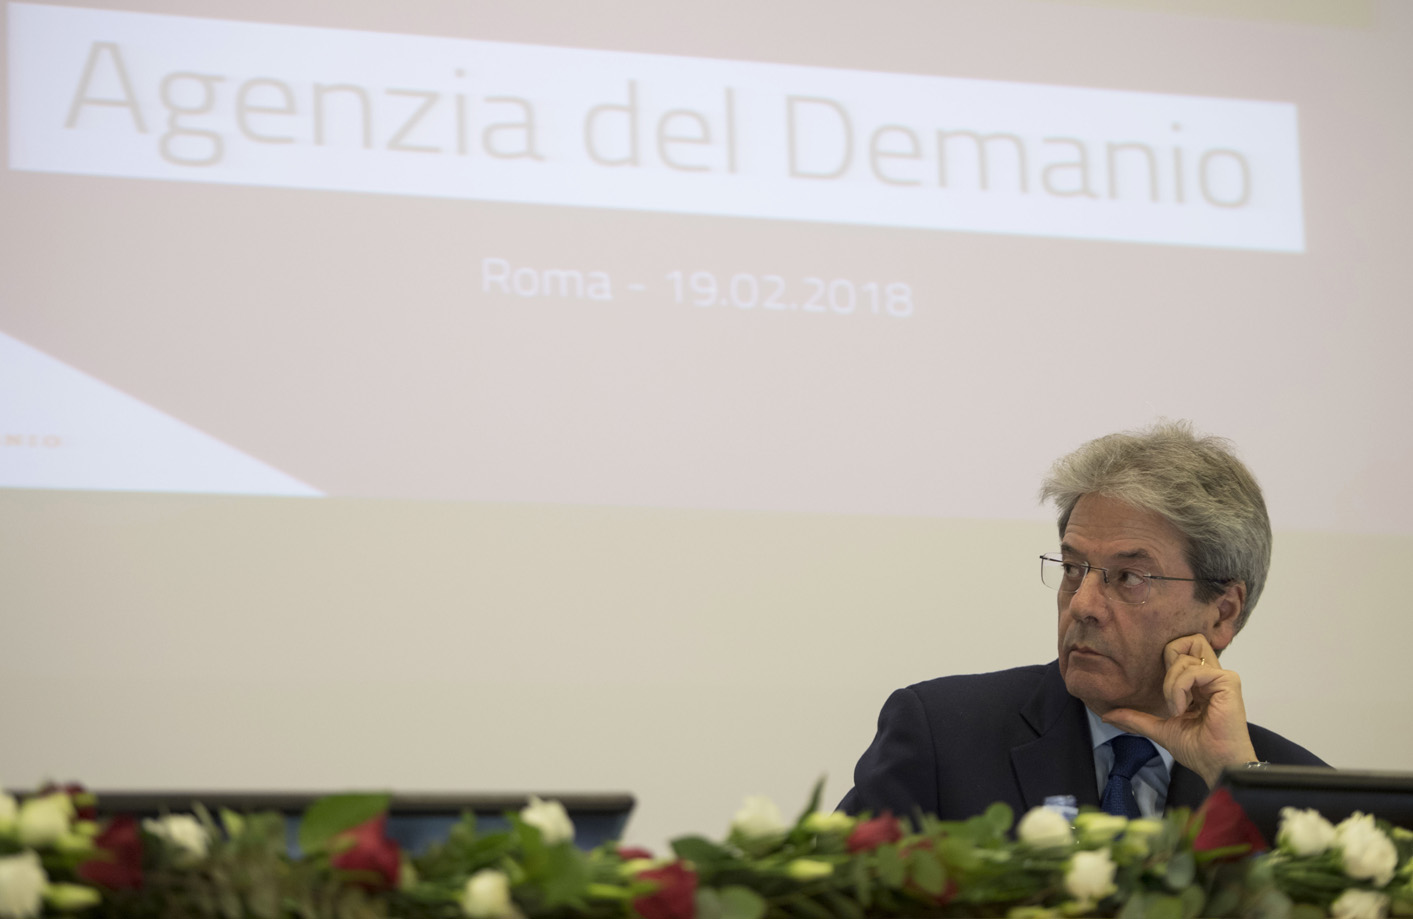 Palo Gentiloni - Photo credit: T.Barchielli - Governo